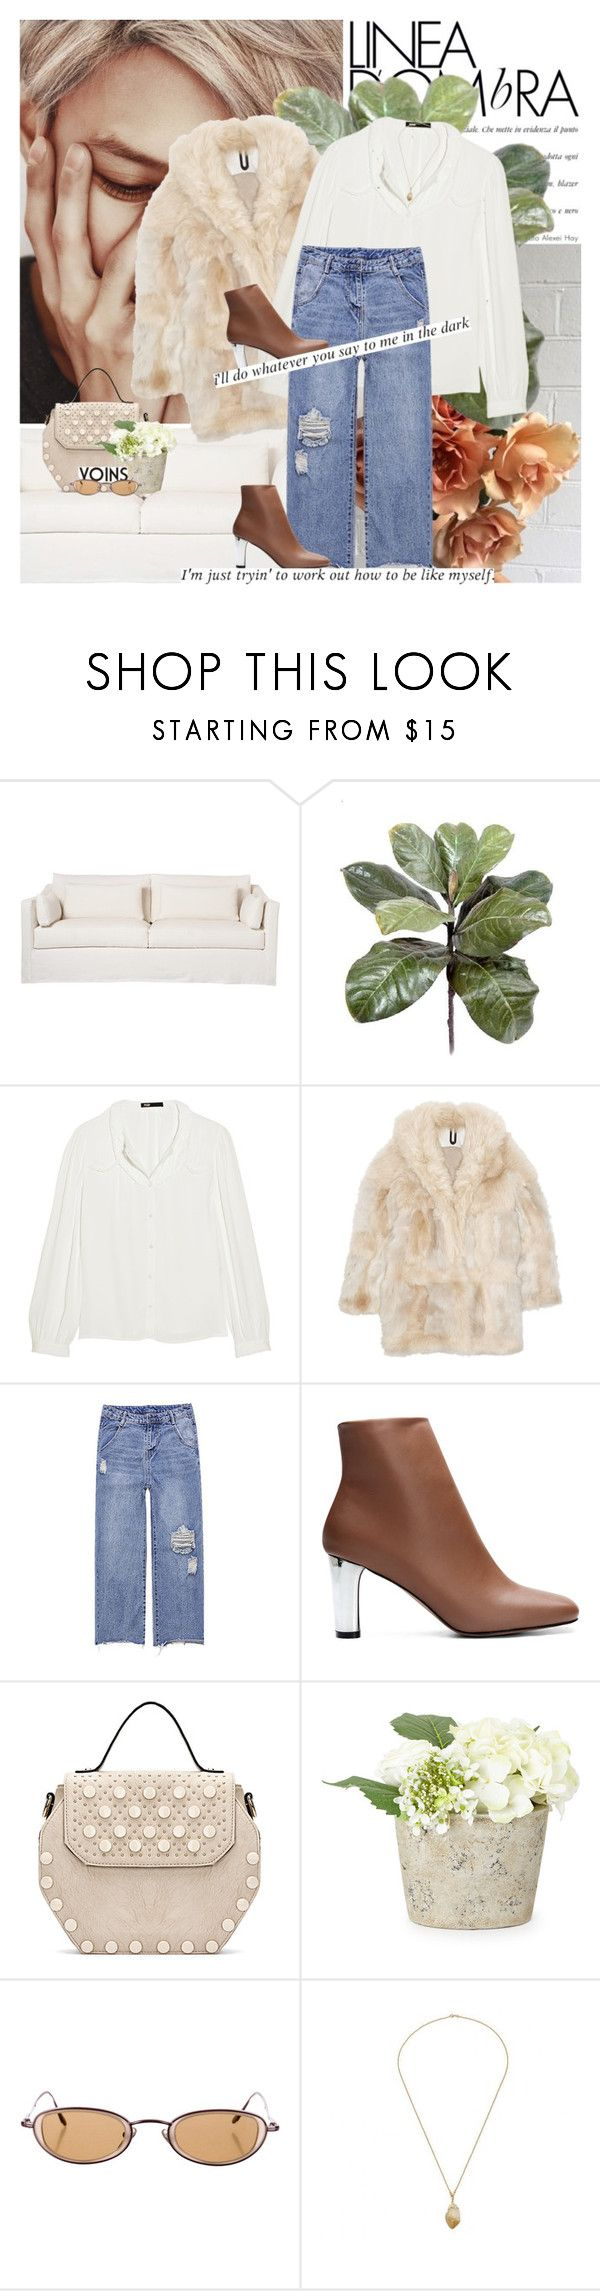 """""""do something special for yourself today"""" by rupp ❤ liked on Polyvore featuring Maje and Topshop Unique"""